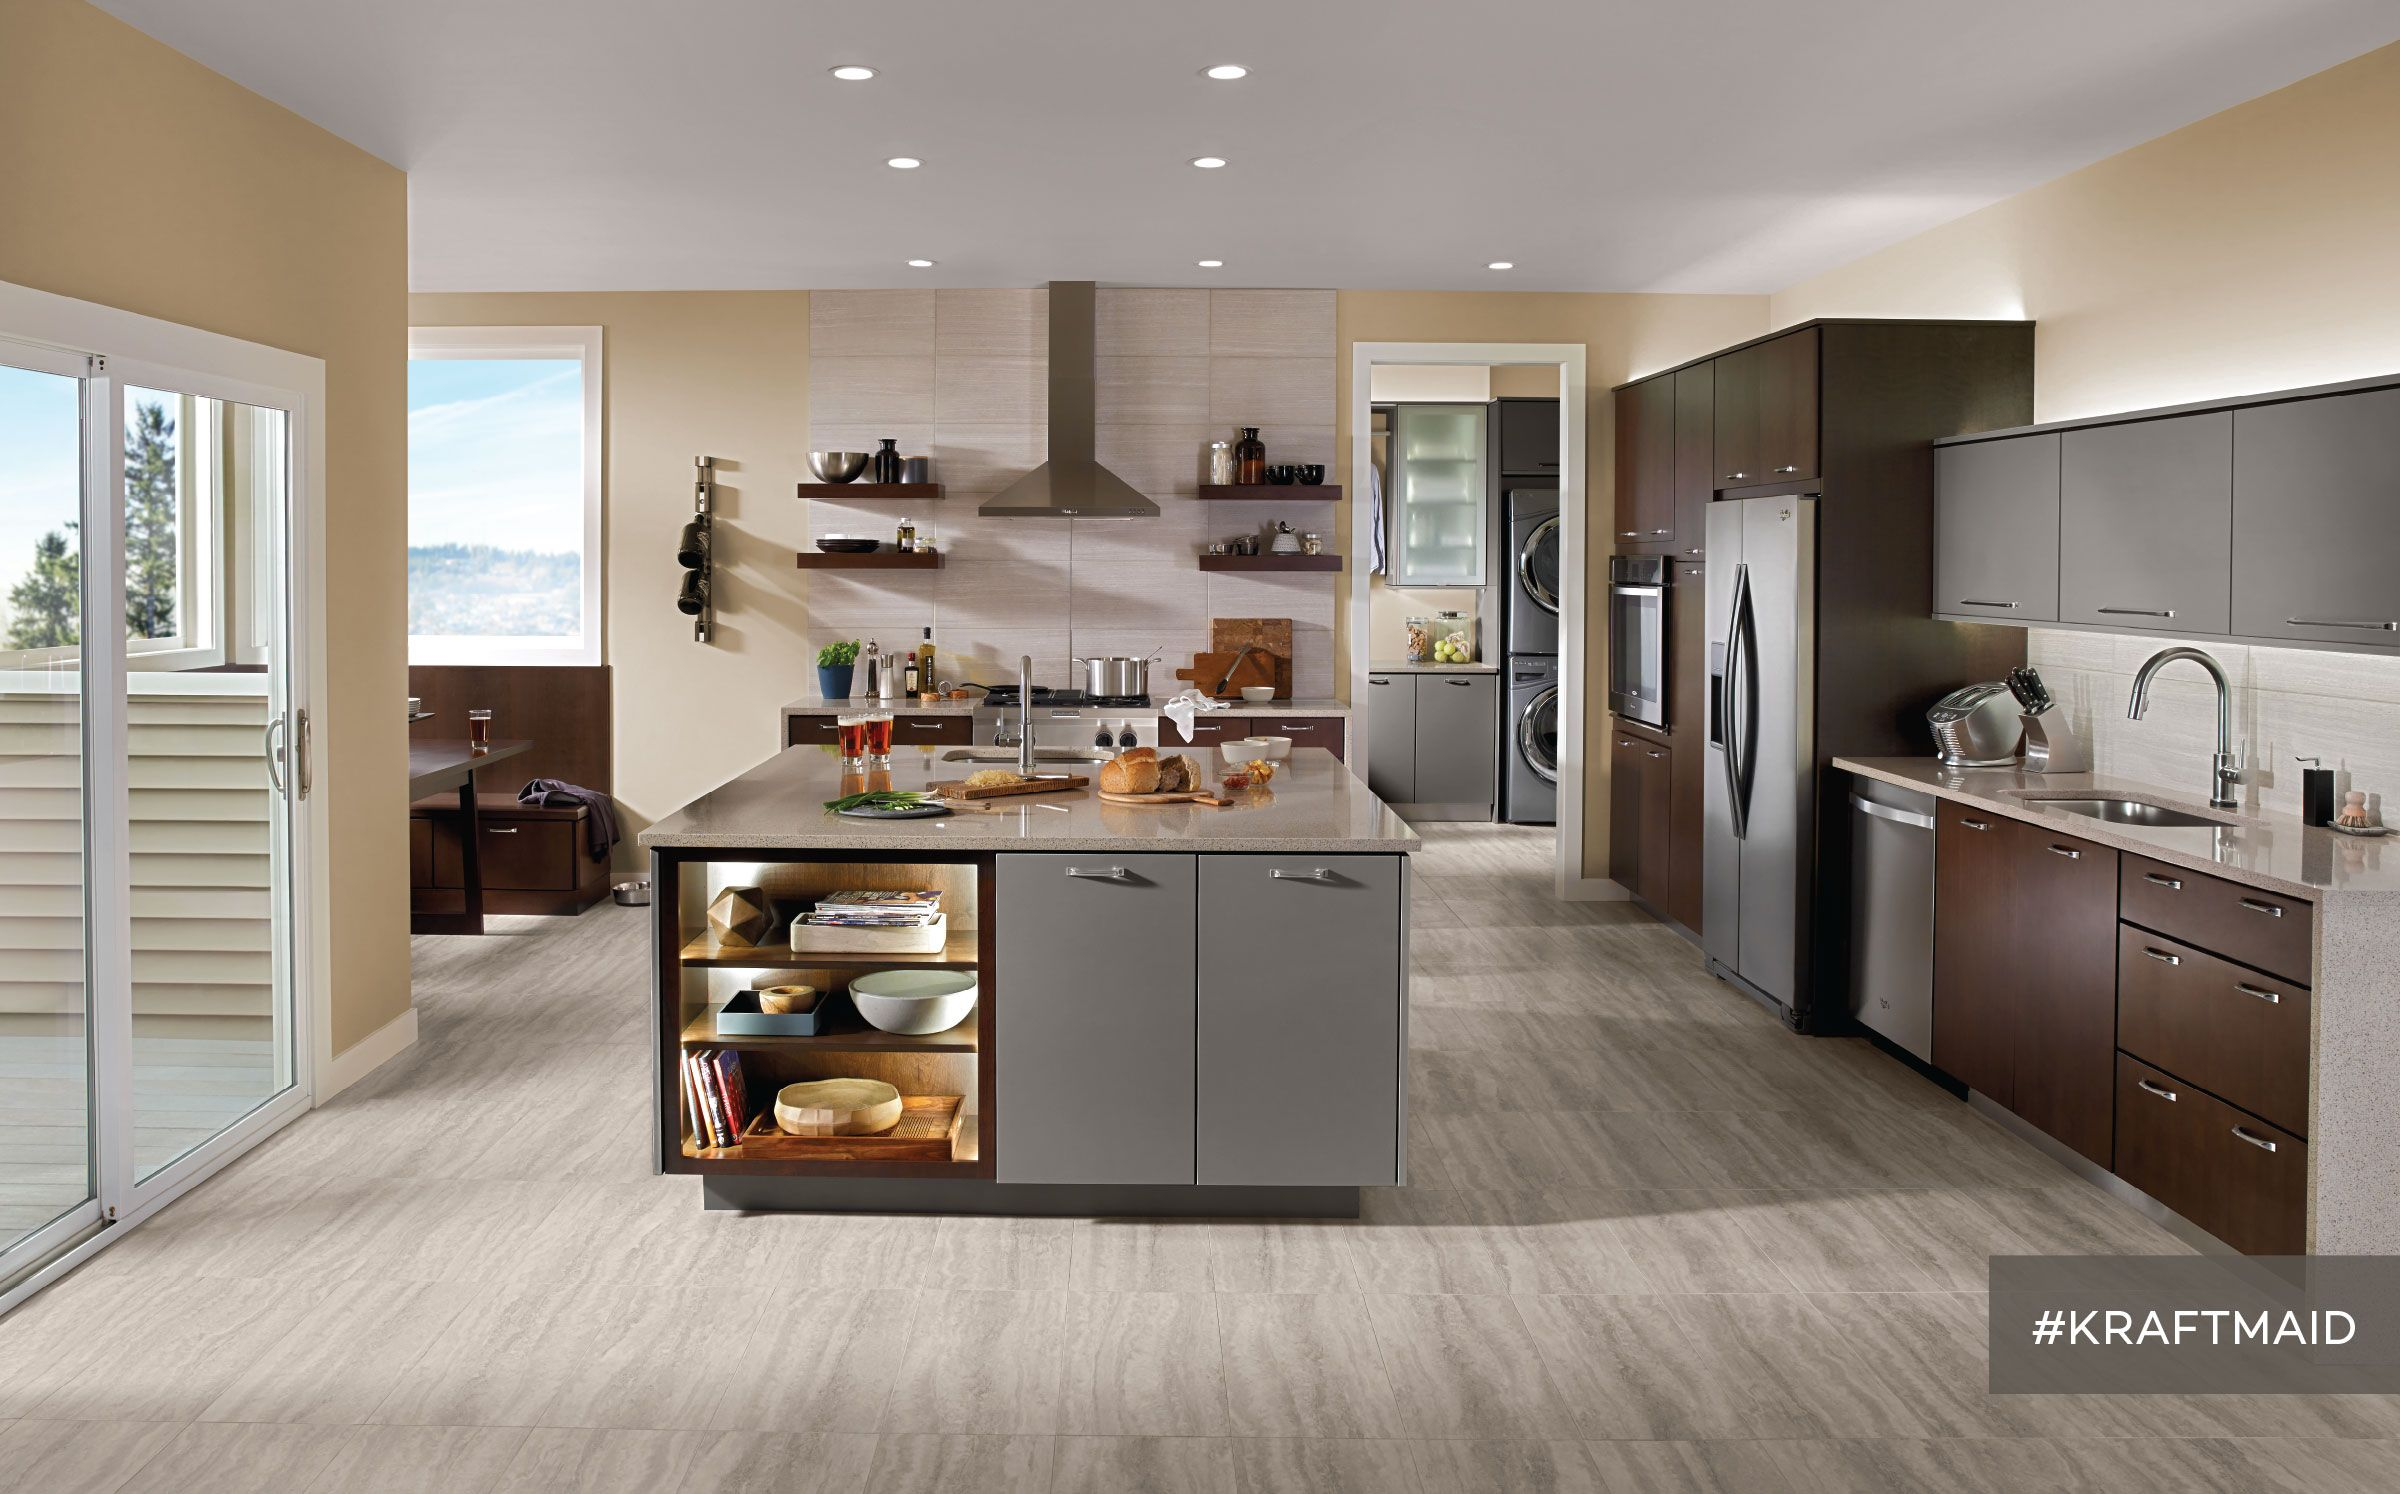 Contemporary Dining Room Cabinets Best This Contemporary Kitchen Sets The Mood For The Whole House—With Design Ideas